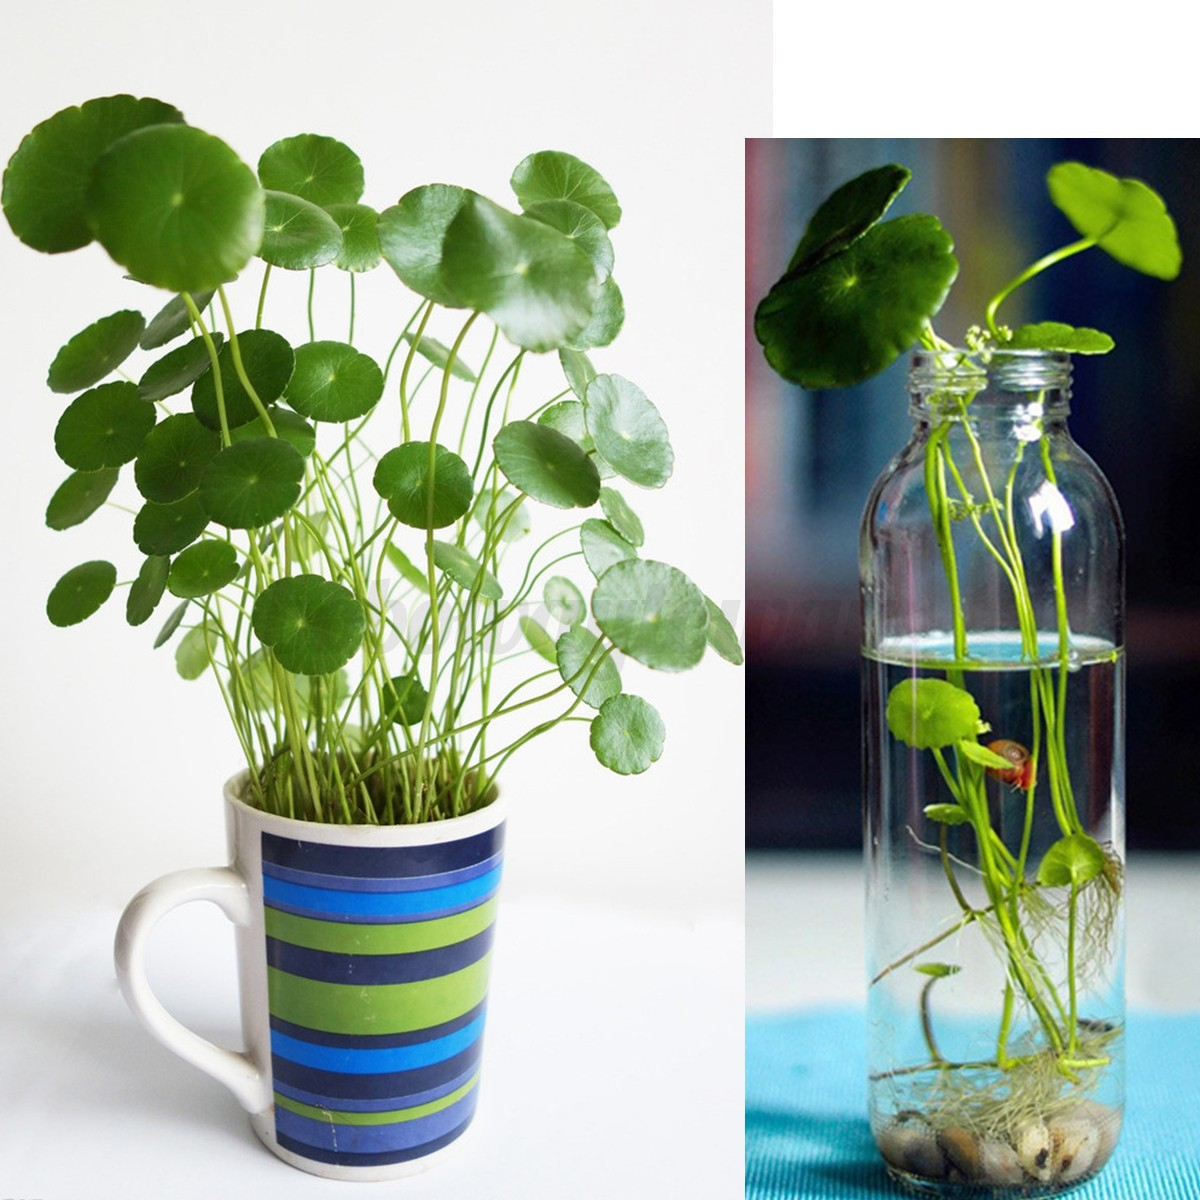 Indoor Plants Grown In Water: 50x Hydrocotyle Vulgaris Pilea Seeds Green Water/Soil